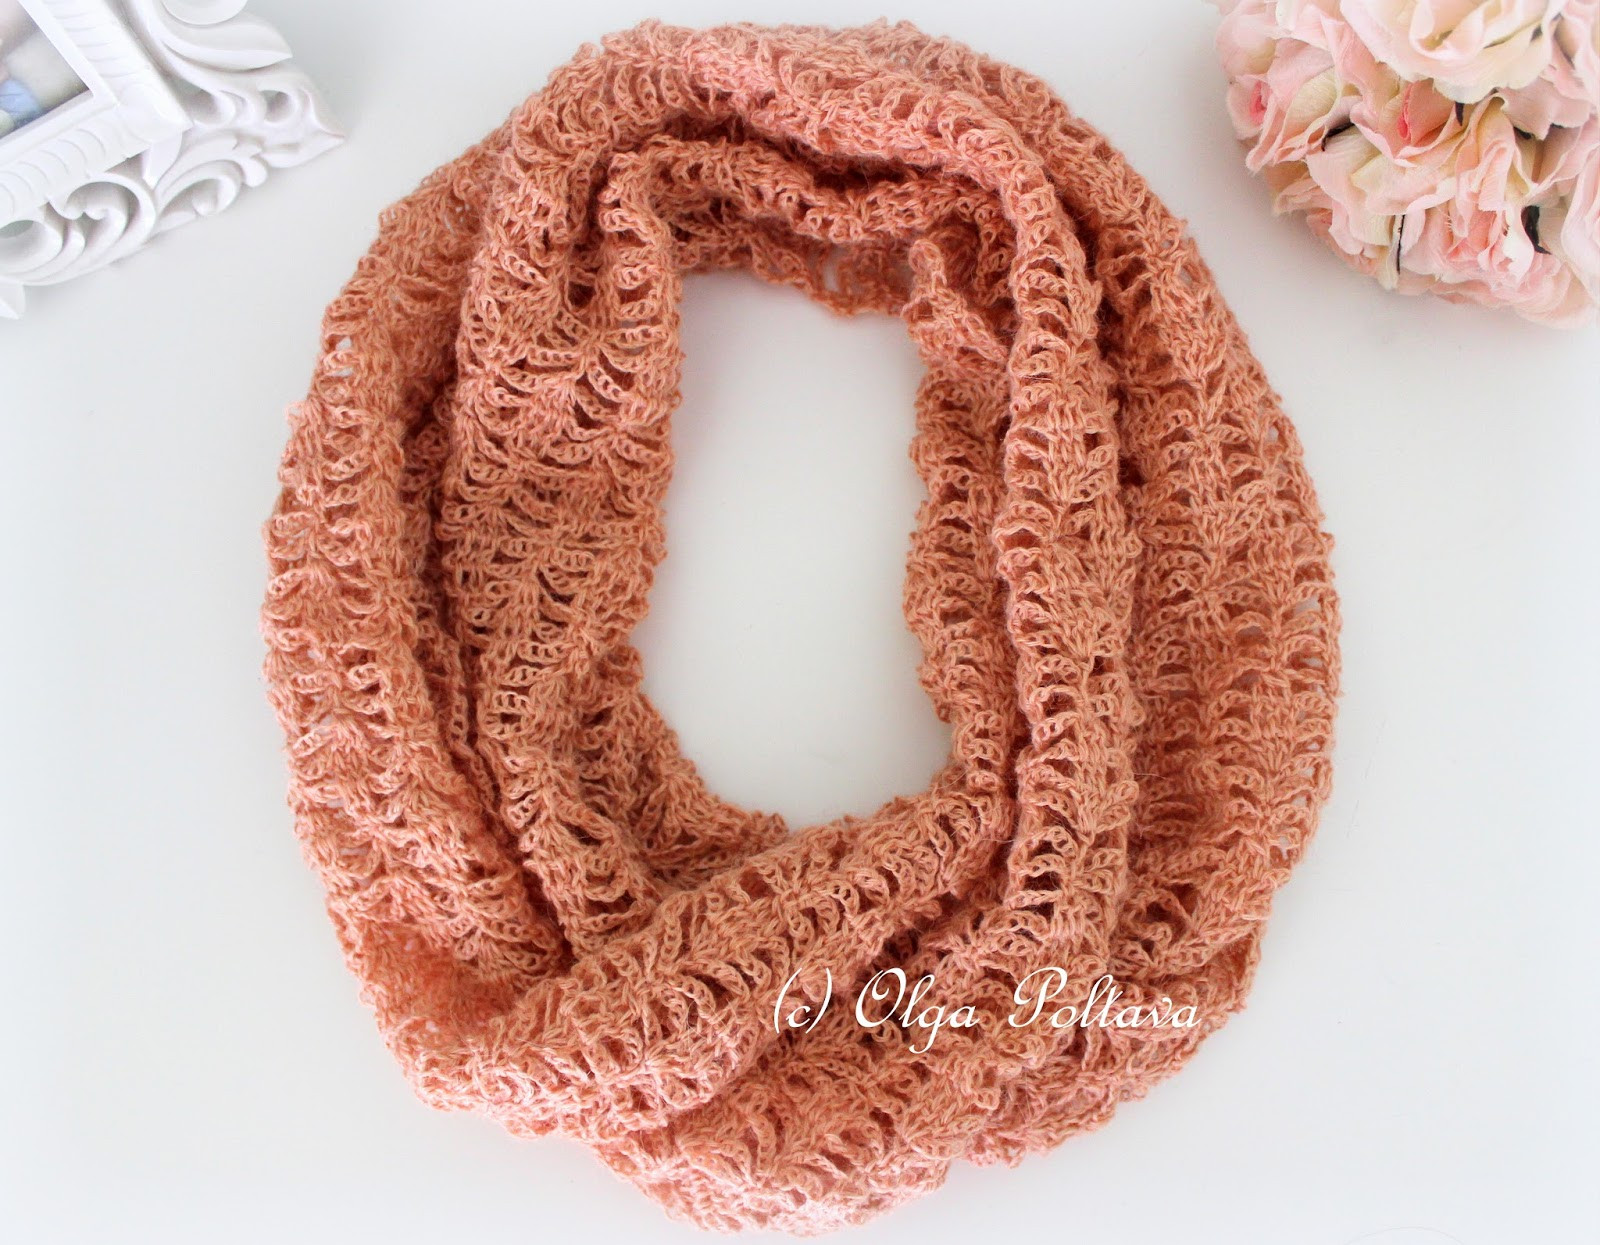 New Lacy Crochet Peach Lace Infinity Crochet Scarf Crochet Lace Scarf Of Incredible 41 Models Crochet Lace Scarf